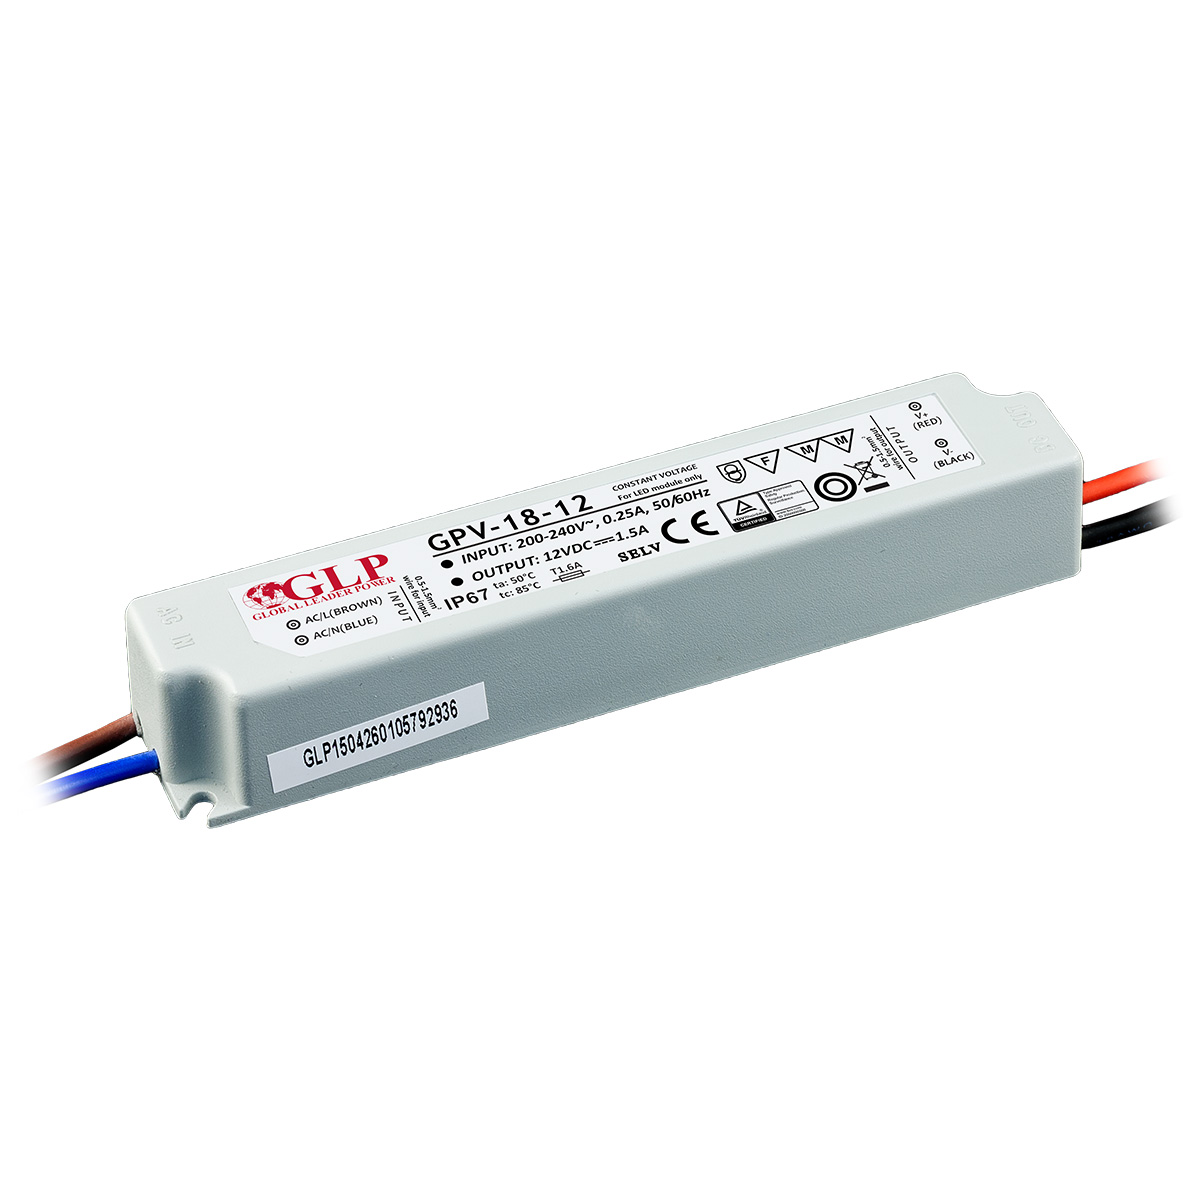 Gpv 18 Global Leader Power Led Driver 12v Circuit 100w Switched Mode Supply